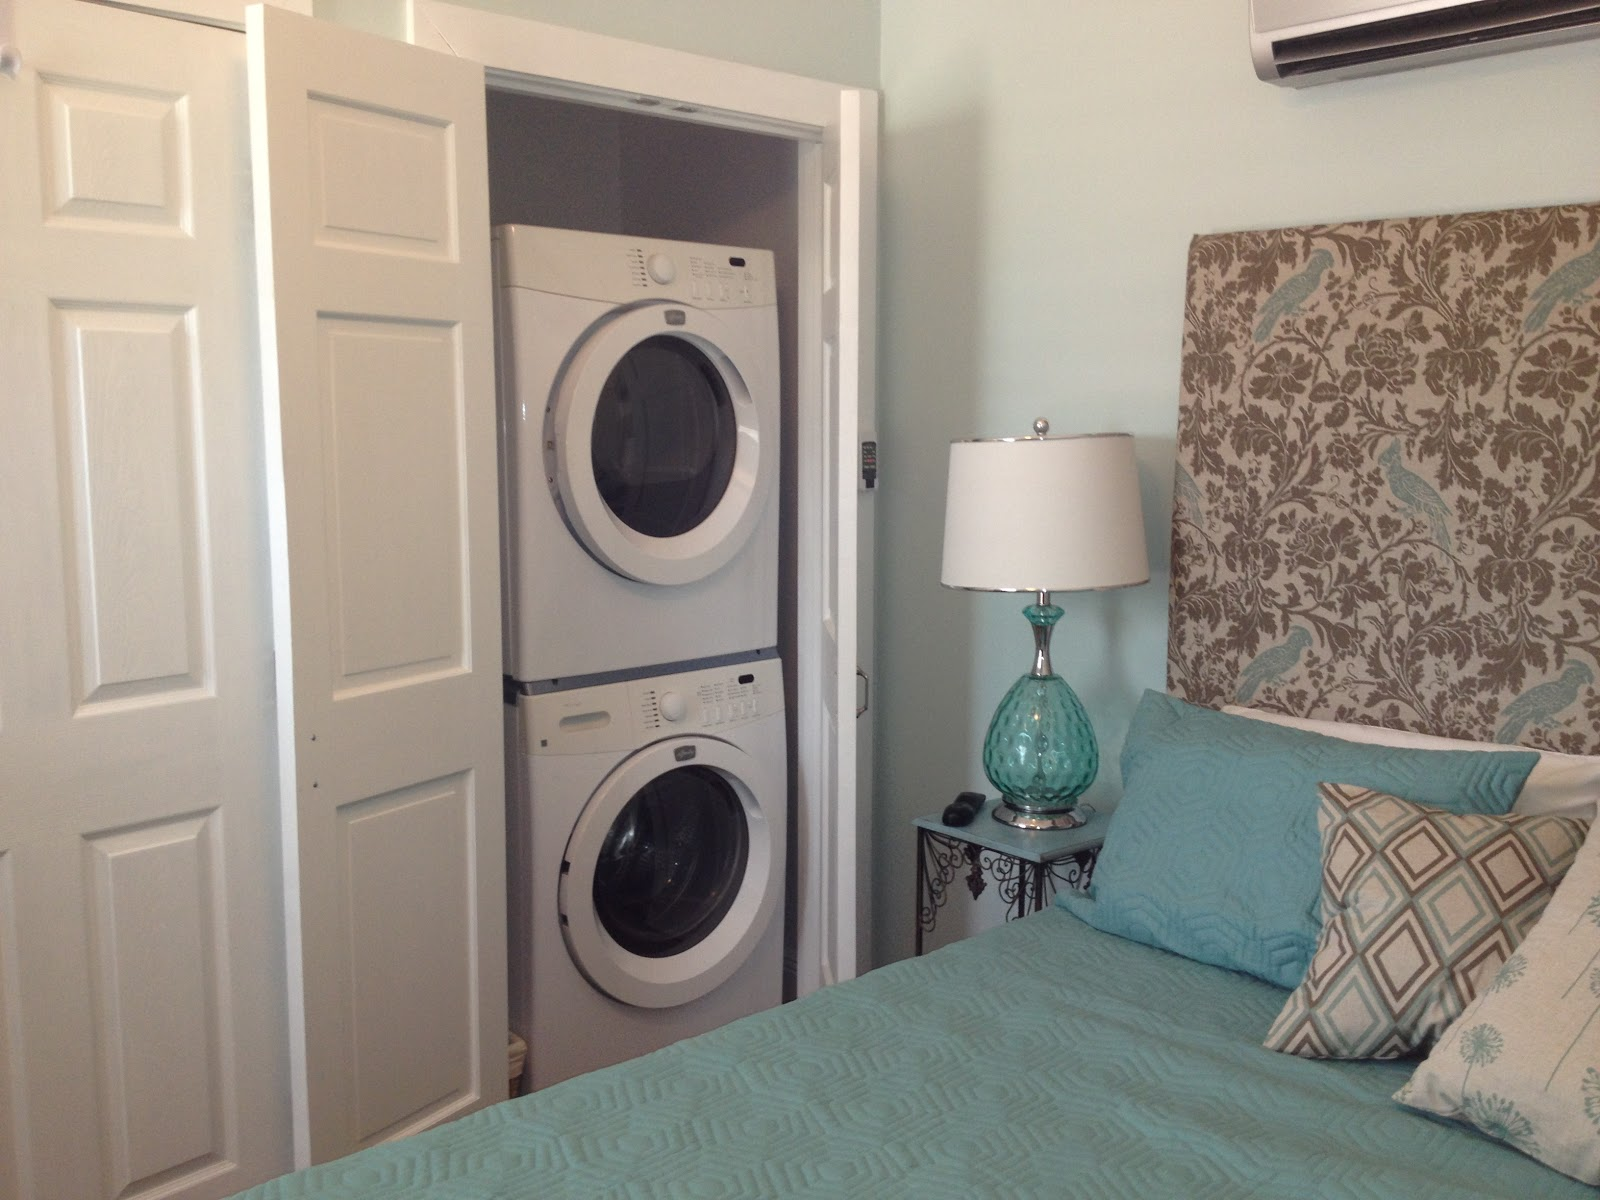 1 Bedroom With Washer And Dryer » Washer And Dryers 1 Bedroom ...